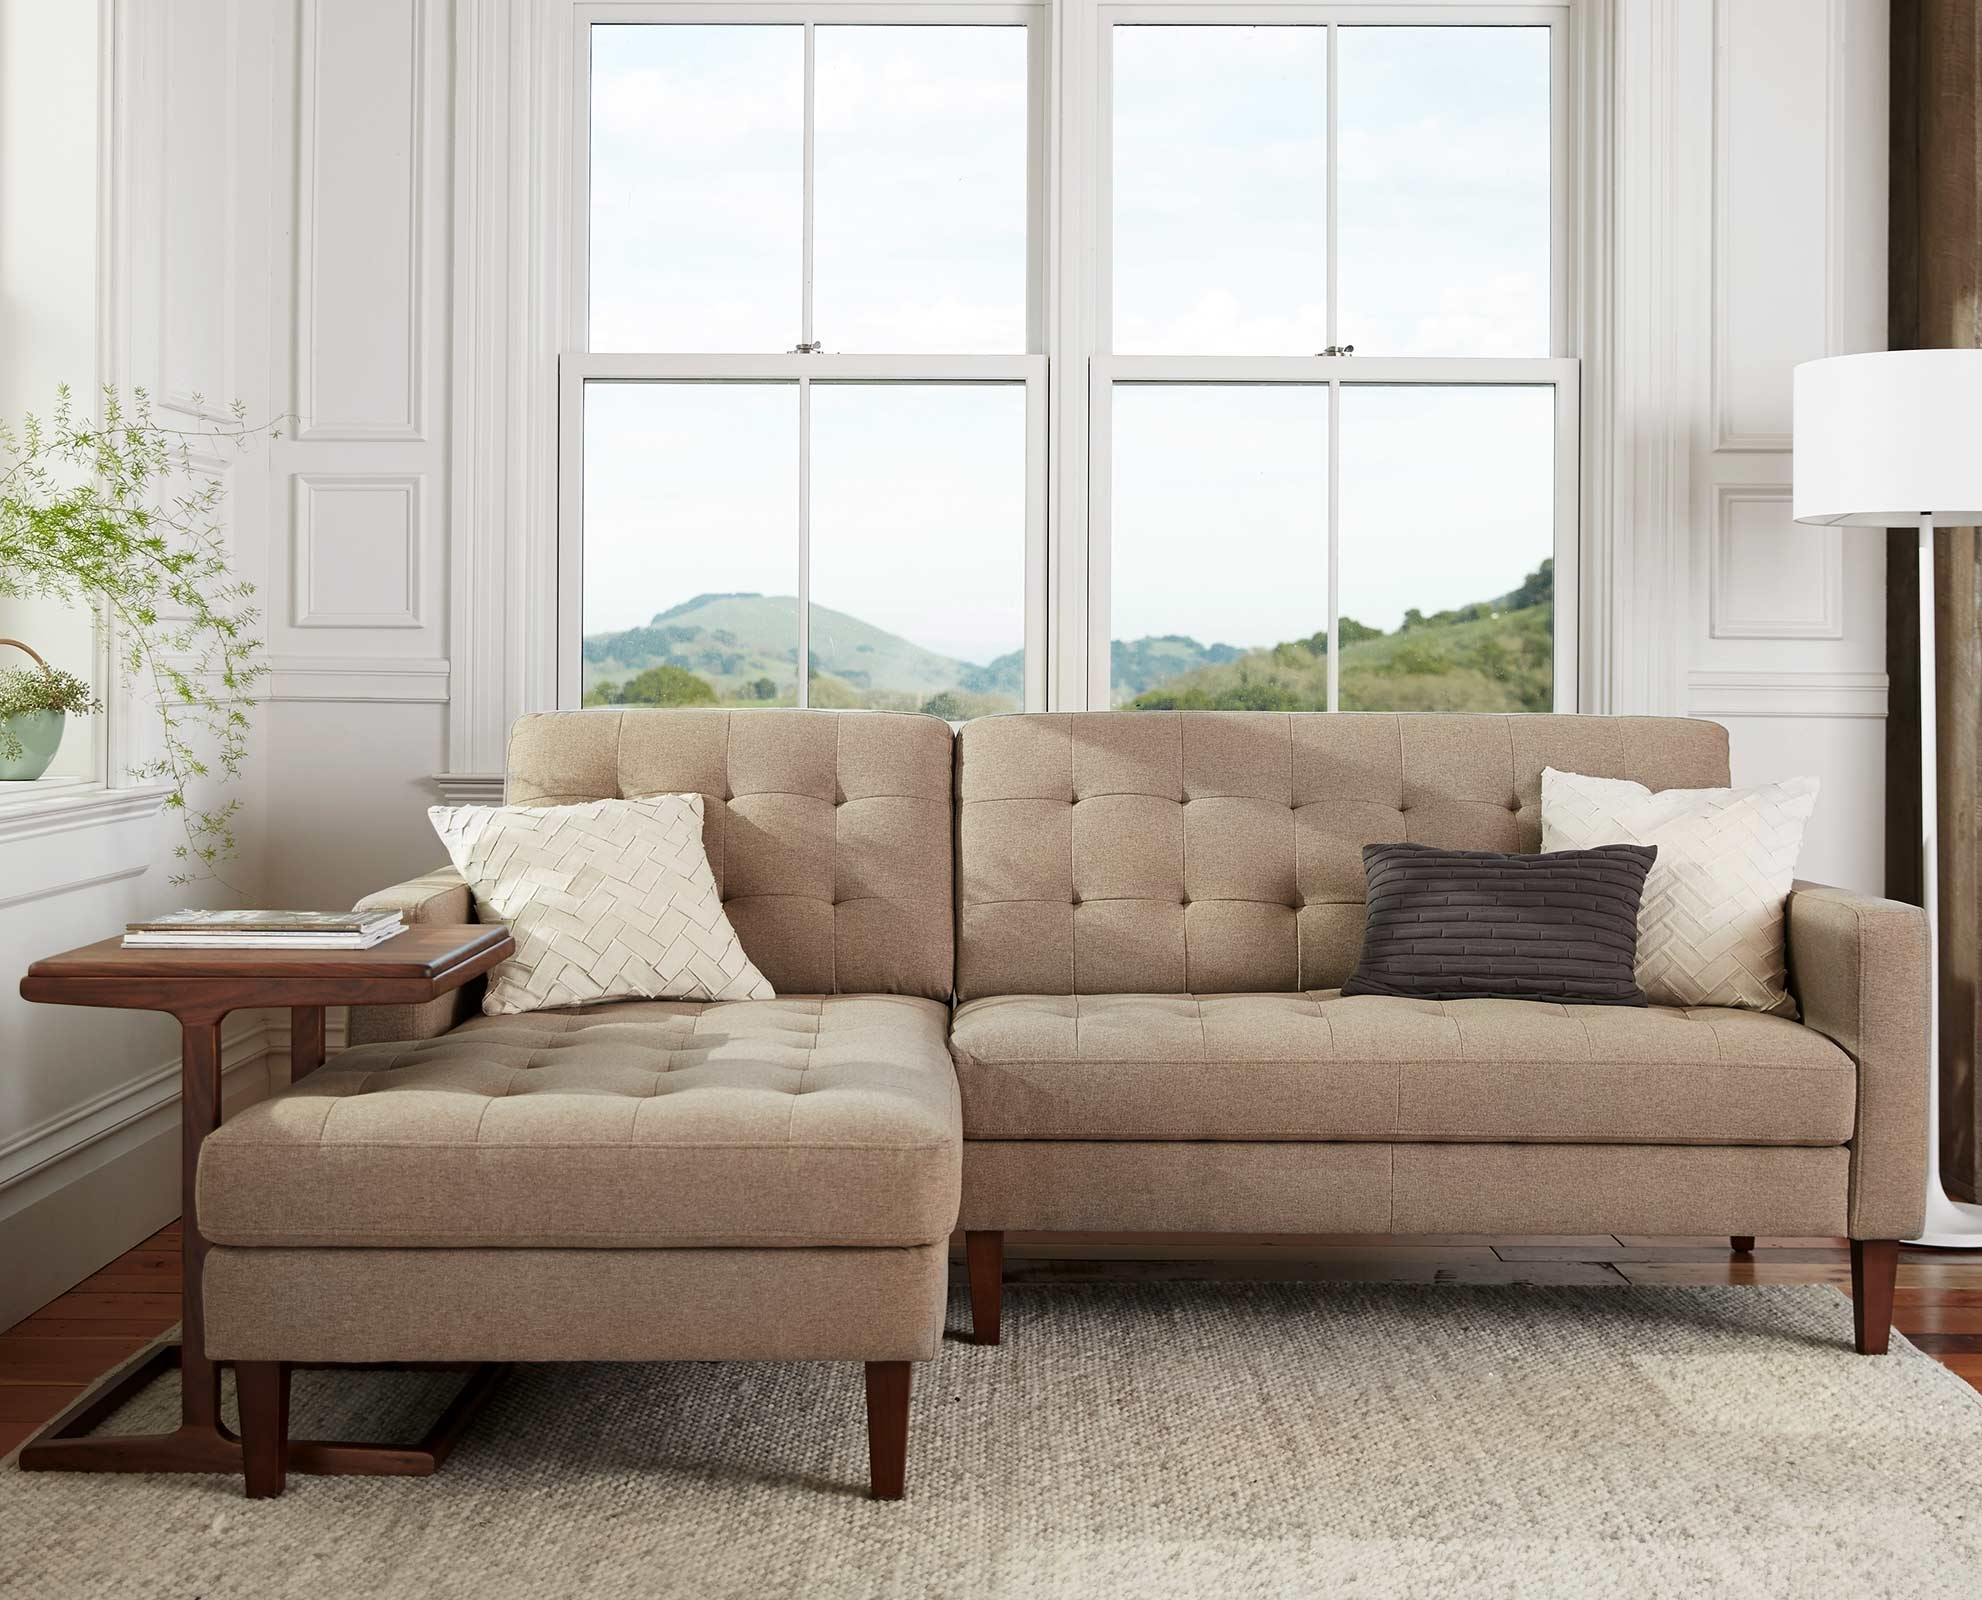 Camilla Chaise Sectional | New House Decor | Pinterest | Upholstery Pertaining To Dania Sectional Sofas (Image 2 of 10)